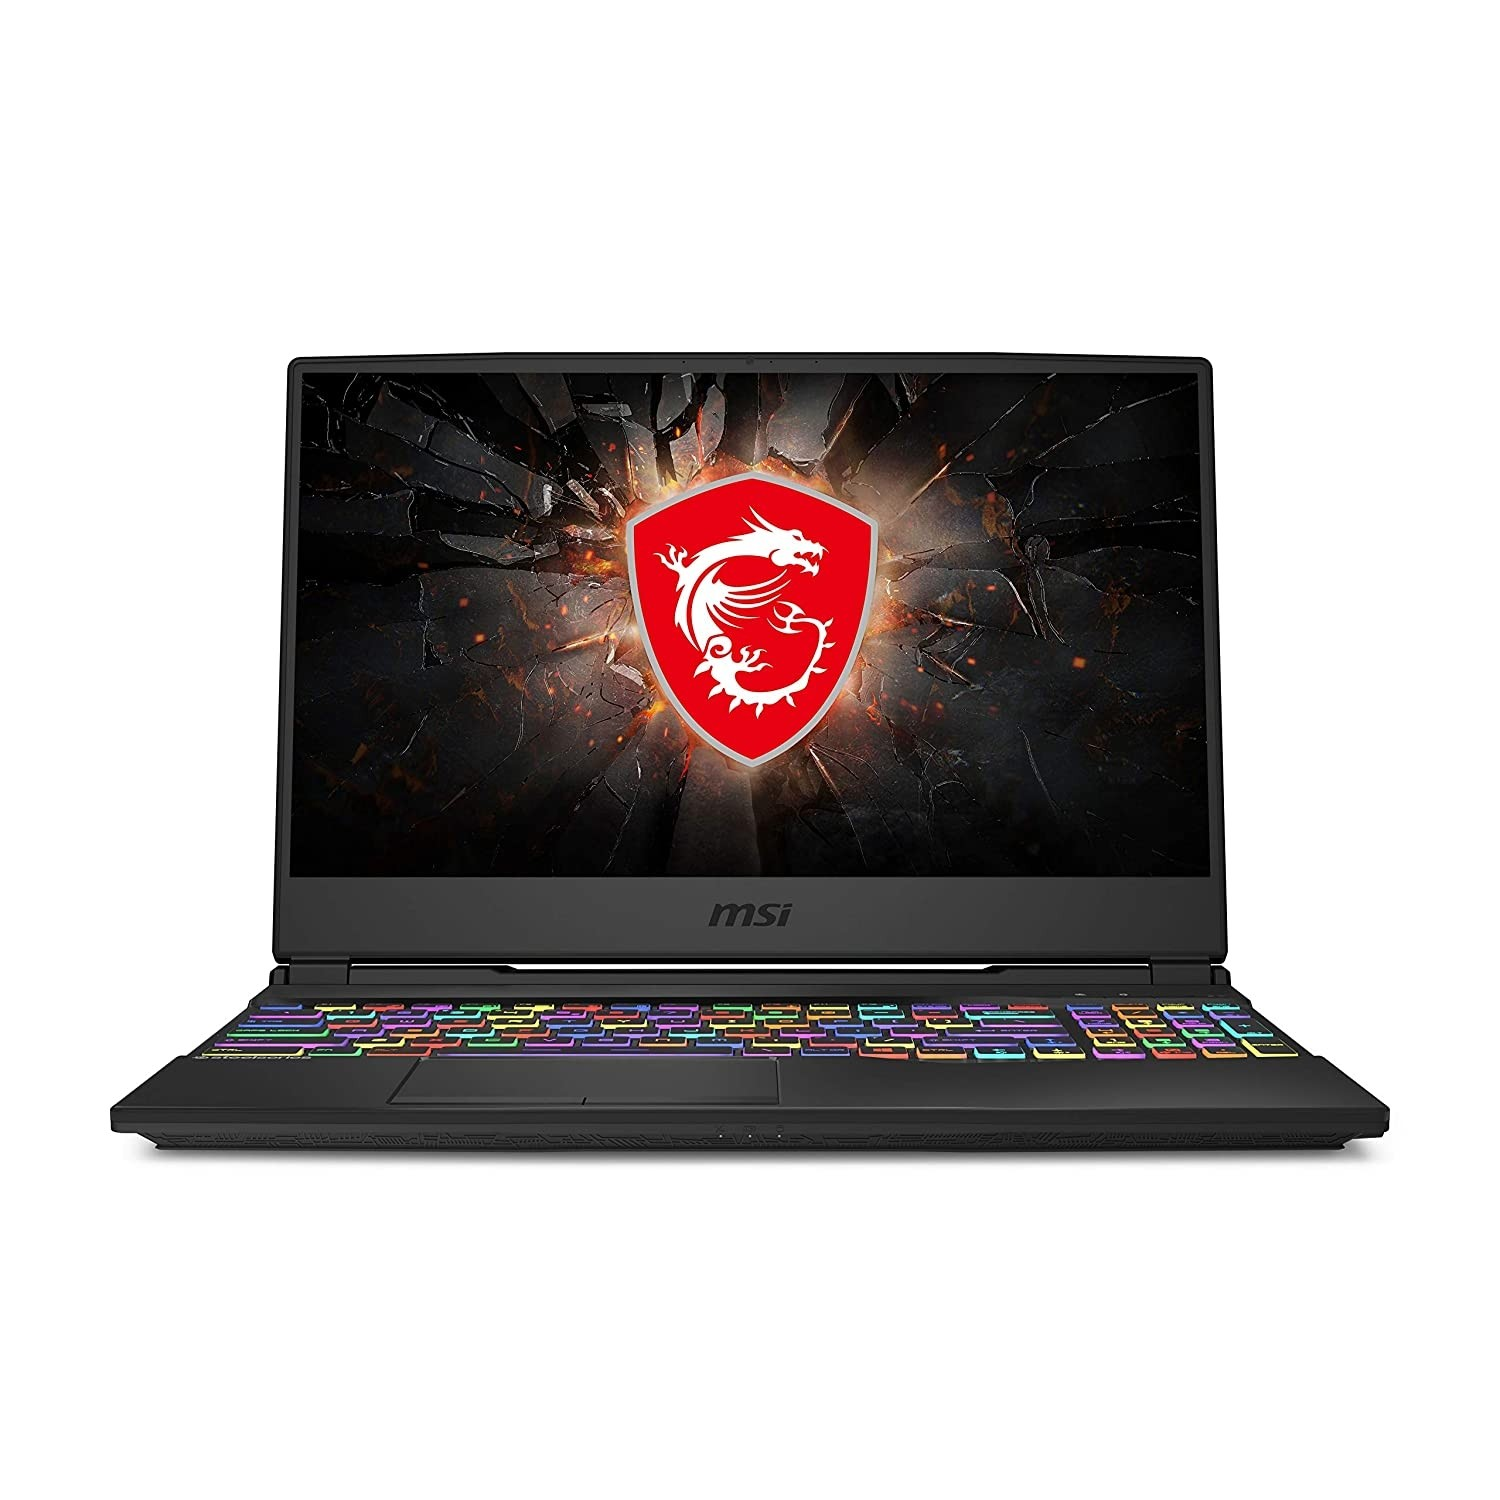 "Refurbished laptops & desktops - MSI Gaming Gl65 Leopard , Intel 9TH Gen. I7-9750H, 15.6"" FHD Gaming Laptop (8GB/512GB Nvme SSD/Windows 10 Home/Nvidia GTX 1650/ Black/2.3Kg) 9Scxk-076In"